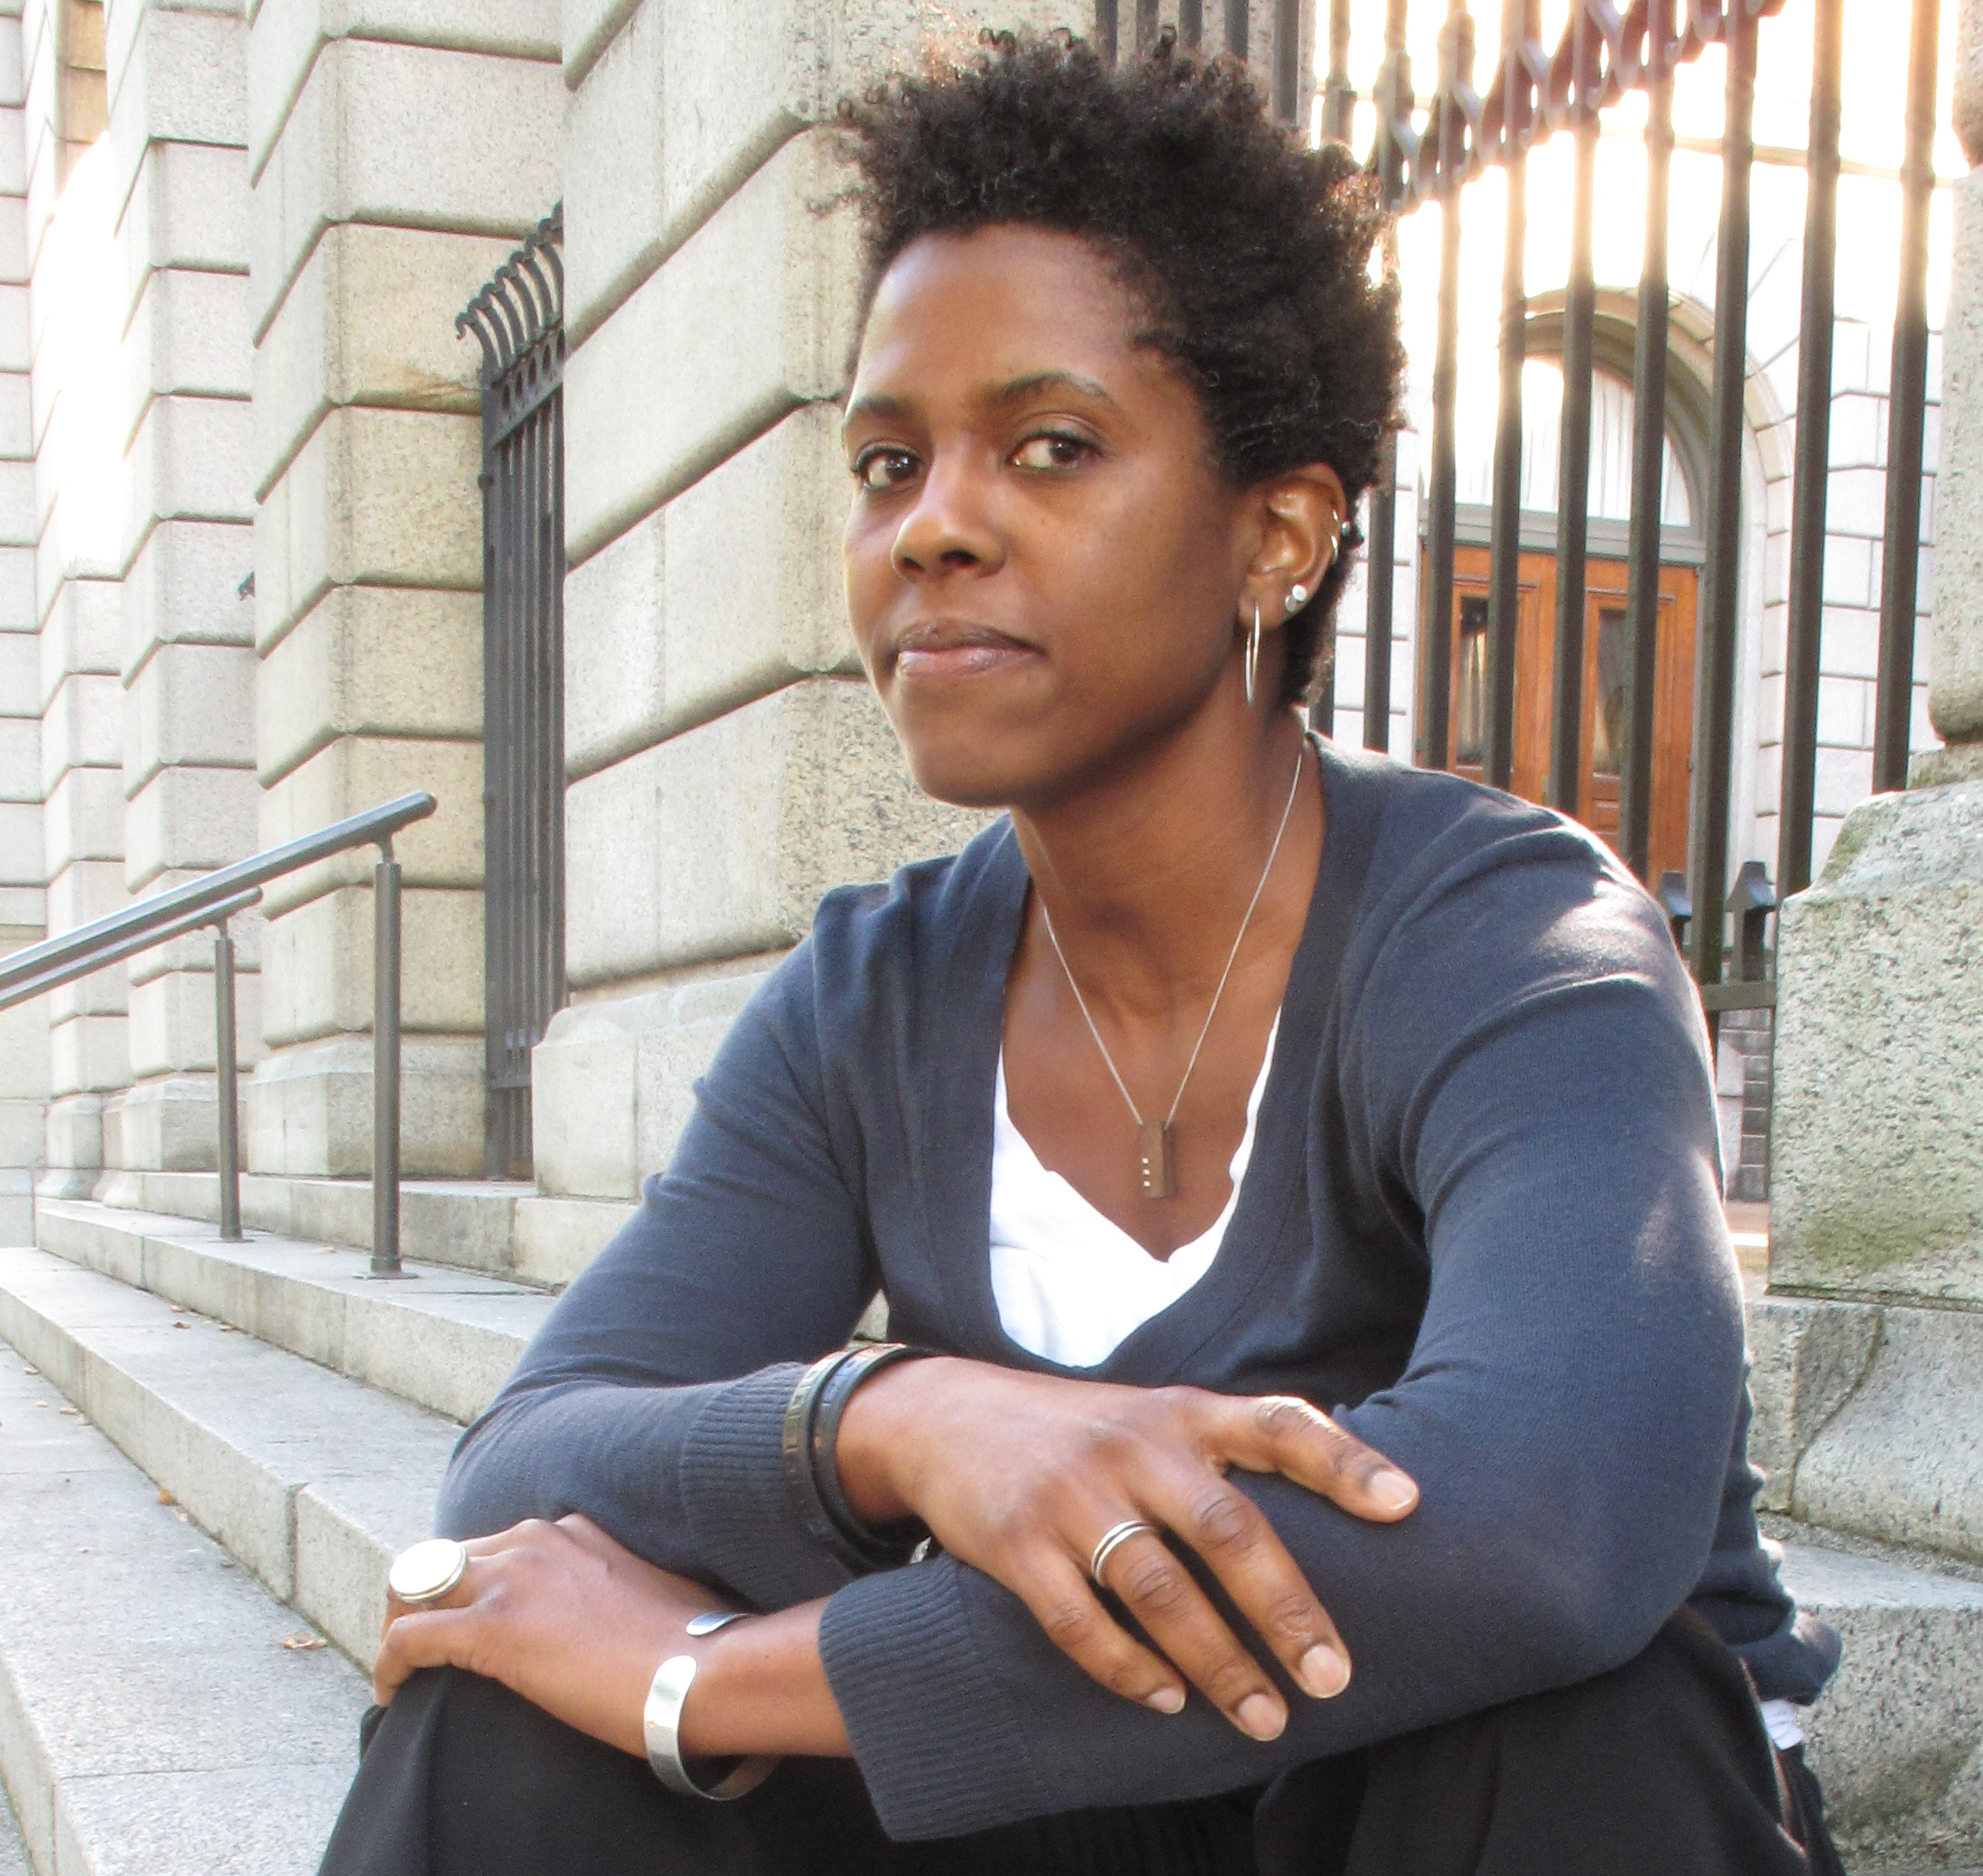 Tonisha A. Toler is the Regional Arts and Culture Council's (RACC) Community Liaison focused on building relationships, especially with diverse and underserved populations and growing RACC's equity practices in all of our operations. Ms. Toler's concerns involve informing the community of RACC's services and resources; learning how RACC may evolve to be more relevant to community's needs; overseeing RACC's annual Professional Development Artist Workshop series and RACC's quarterly creative community networking event, Art Spark.      Ms. Toler has been with RACC since 2007 as the Grants and Outreach Coordinator assisting in the administration of all the RACC's grant programs and coordinating various RACC outreach efforts. Before joining RACC in 2007 she worked for the Washington State Arts Commission in Olympia, WA.      Ms. Toler started her work in the arts in gallery and museum exhibition prep in 2002 interning nationally and internationally.      Her background as an artist is concentrated in art that attends to social injustice and continues to be drawn to all art especially focused on social justice messaging. Her other passion has been community work, systems and system change performing volunteer work for organizations such as Media Island International, Inc. (MII); Food Not Bombs, Student Workers Union, and the Crisis Clinic of Thurston County. She is grateful for this opportunity to be a part of a creative project and stretch herself to give more to the community.